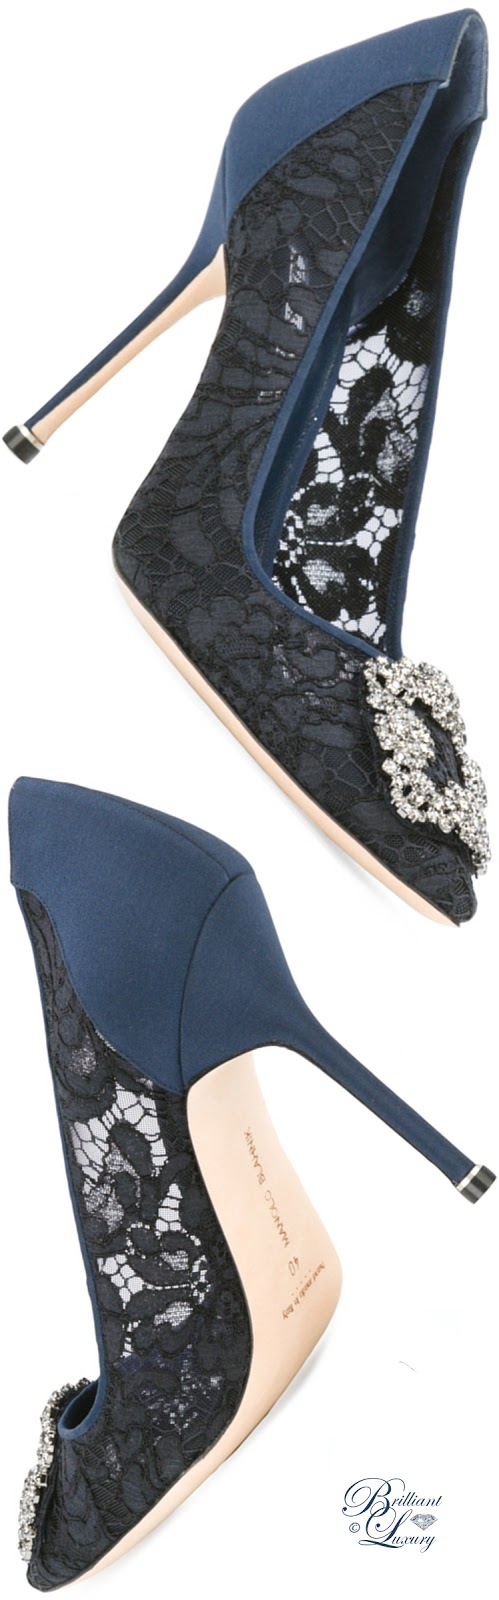 Brilliant Luxury ♦ Manolo Blahnik Hangisi Lace Pumps